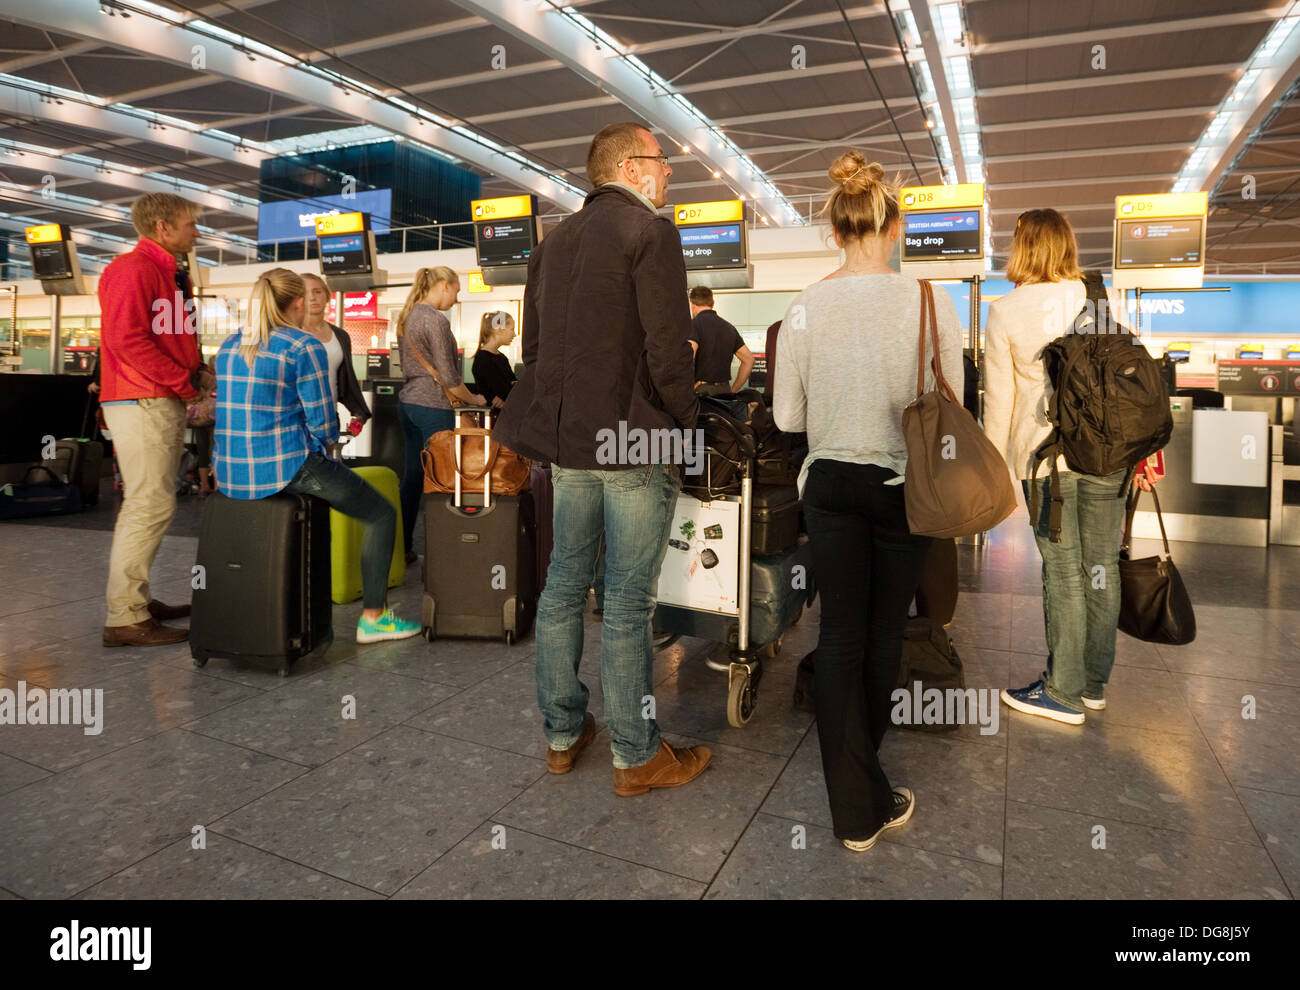 People in a queue at the Check in, Terminal 5, Heathrow airport London UK - Stock Image